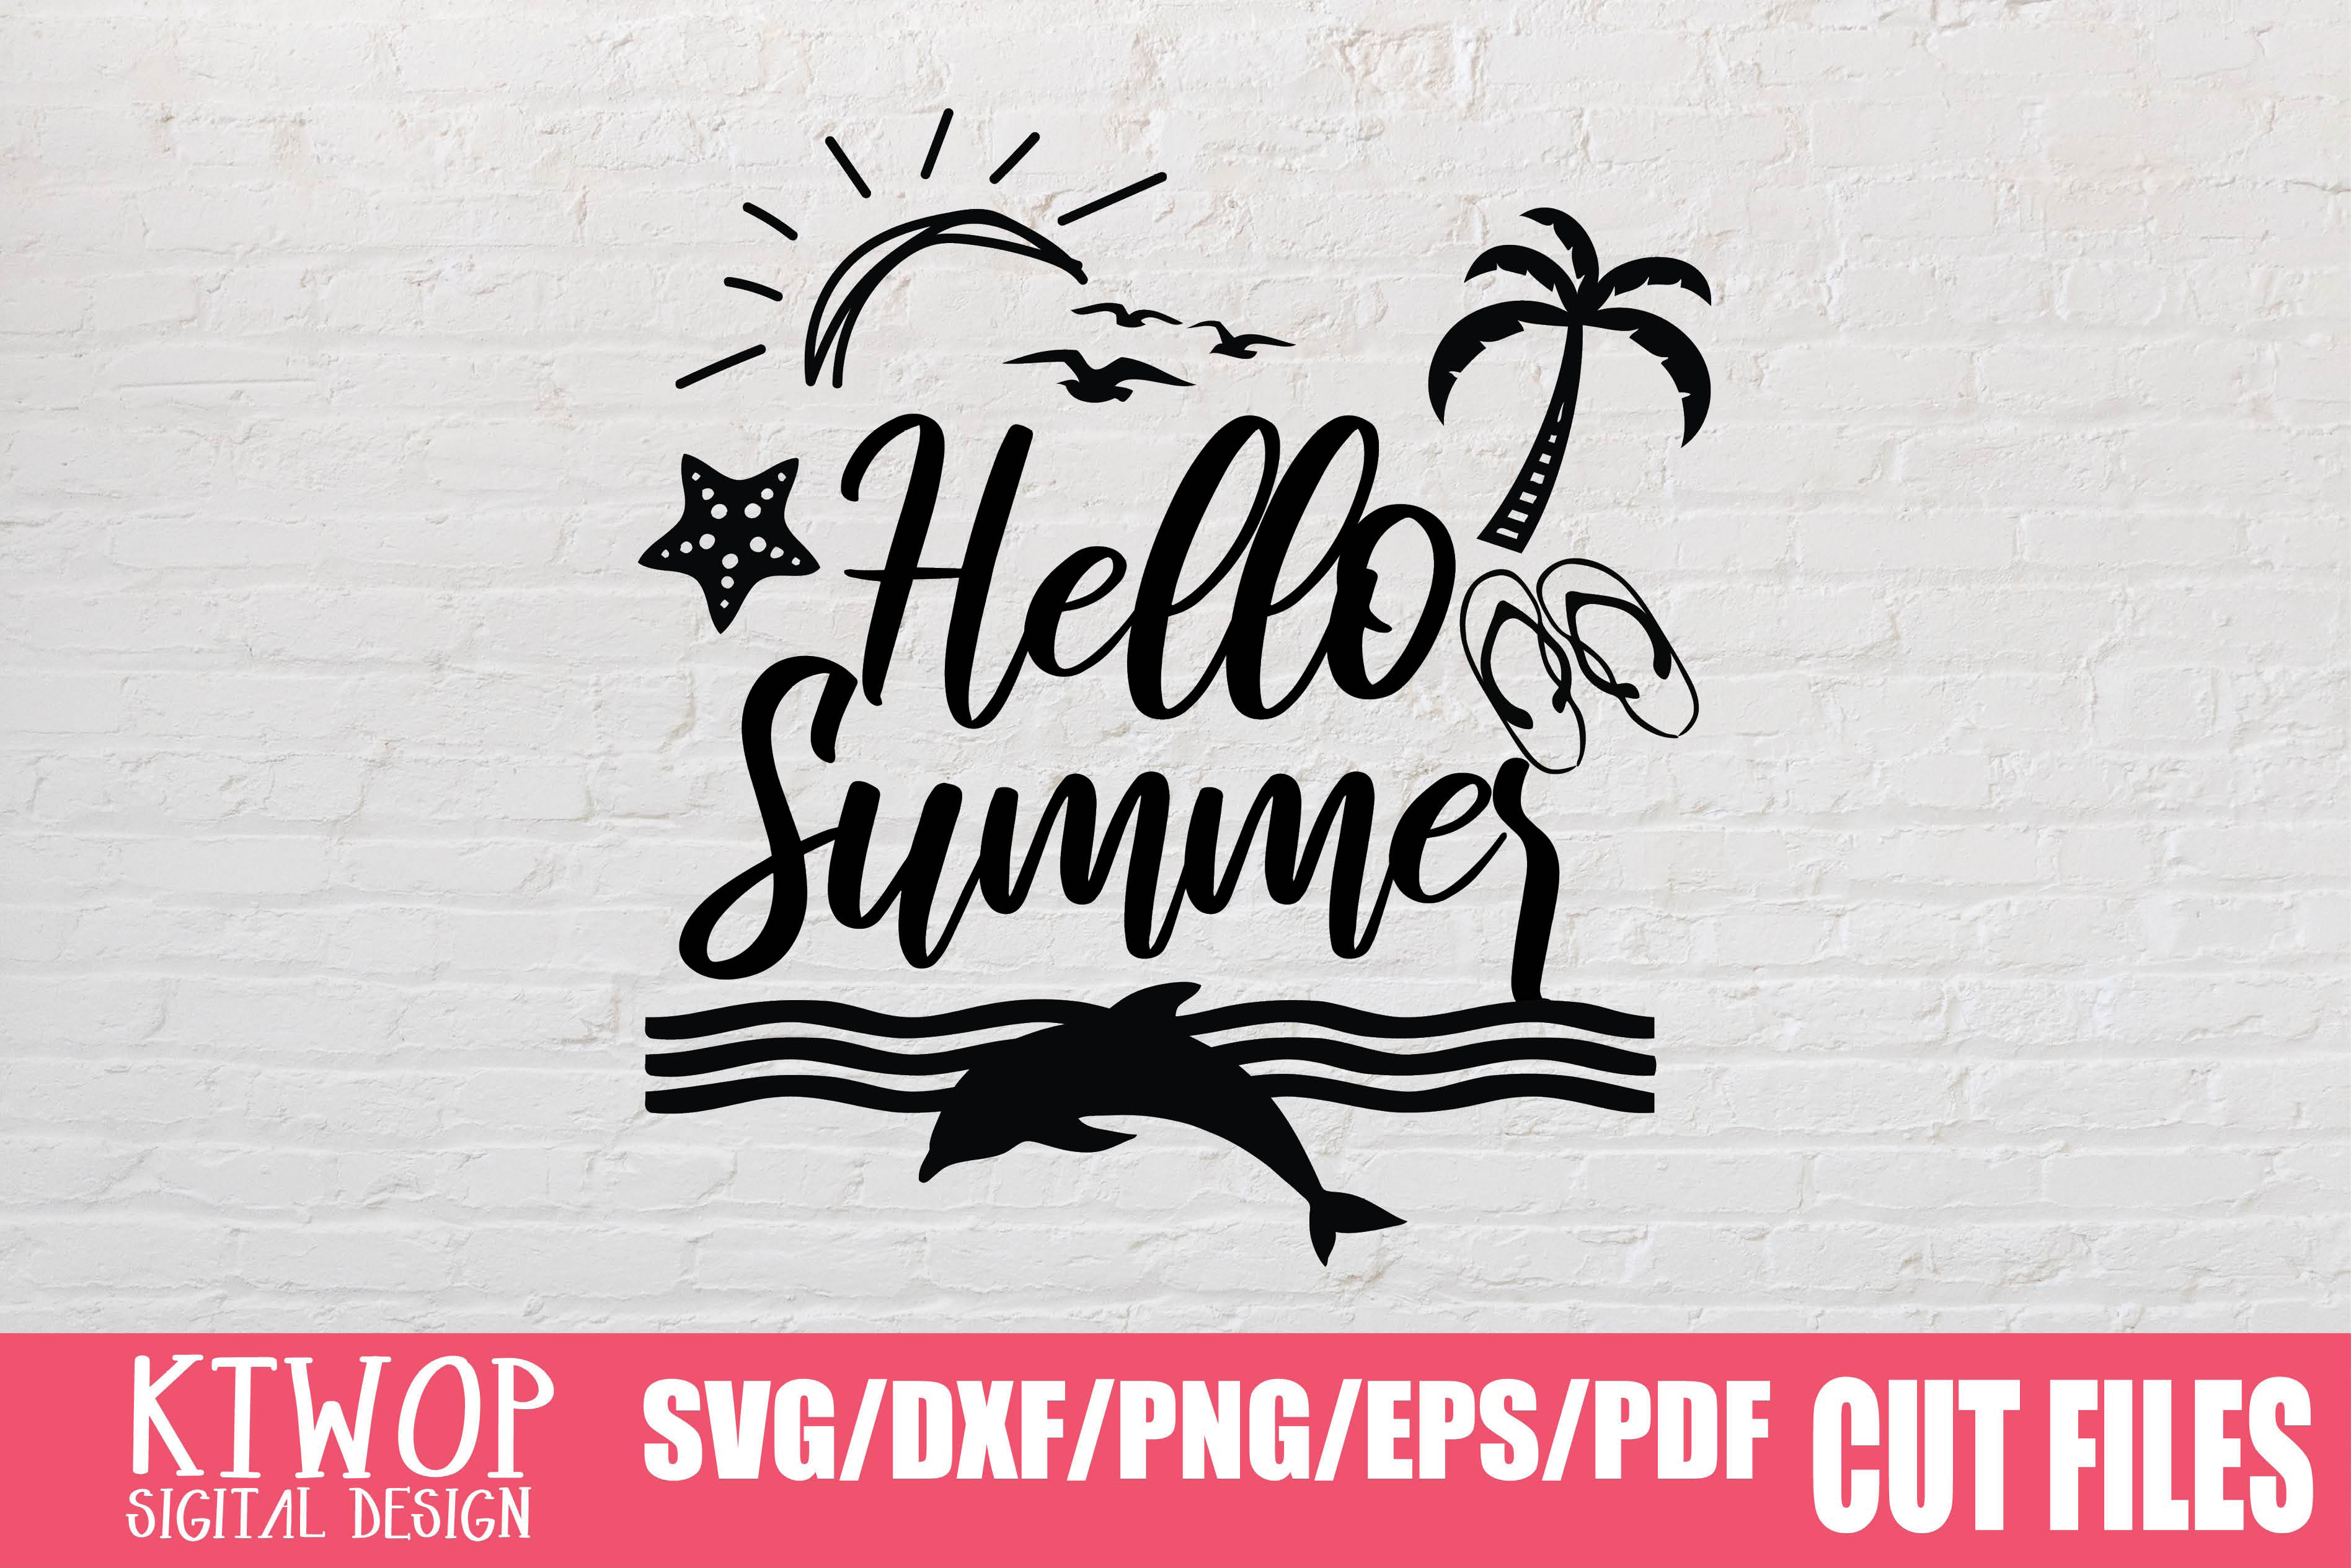 Download Free Hello Summer Graphic By Ktwop Creative Fabrica for Cricut Explore, Silhouette and other cutting machines.